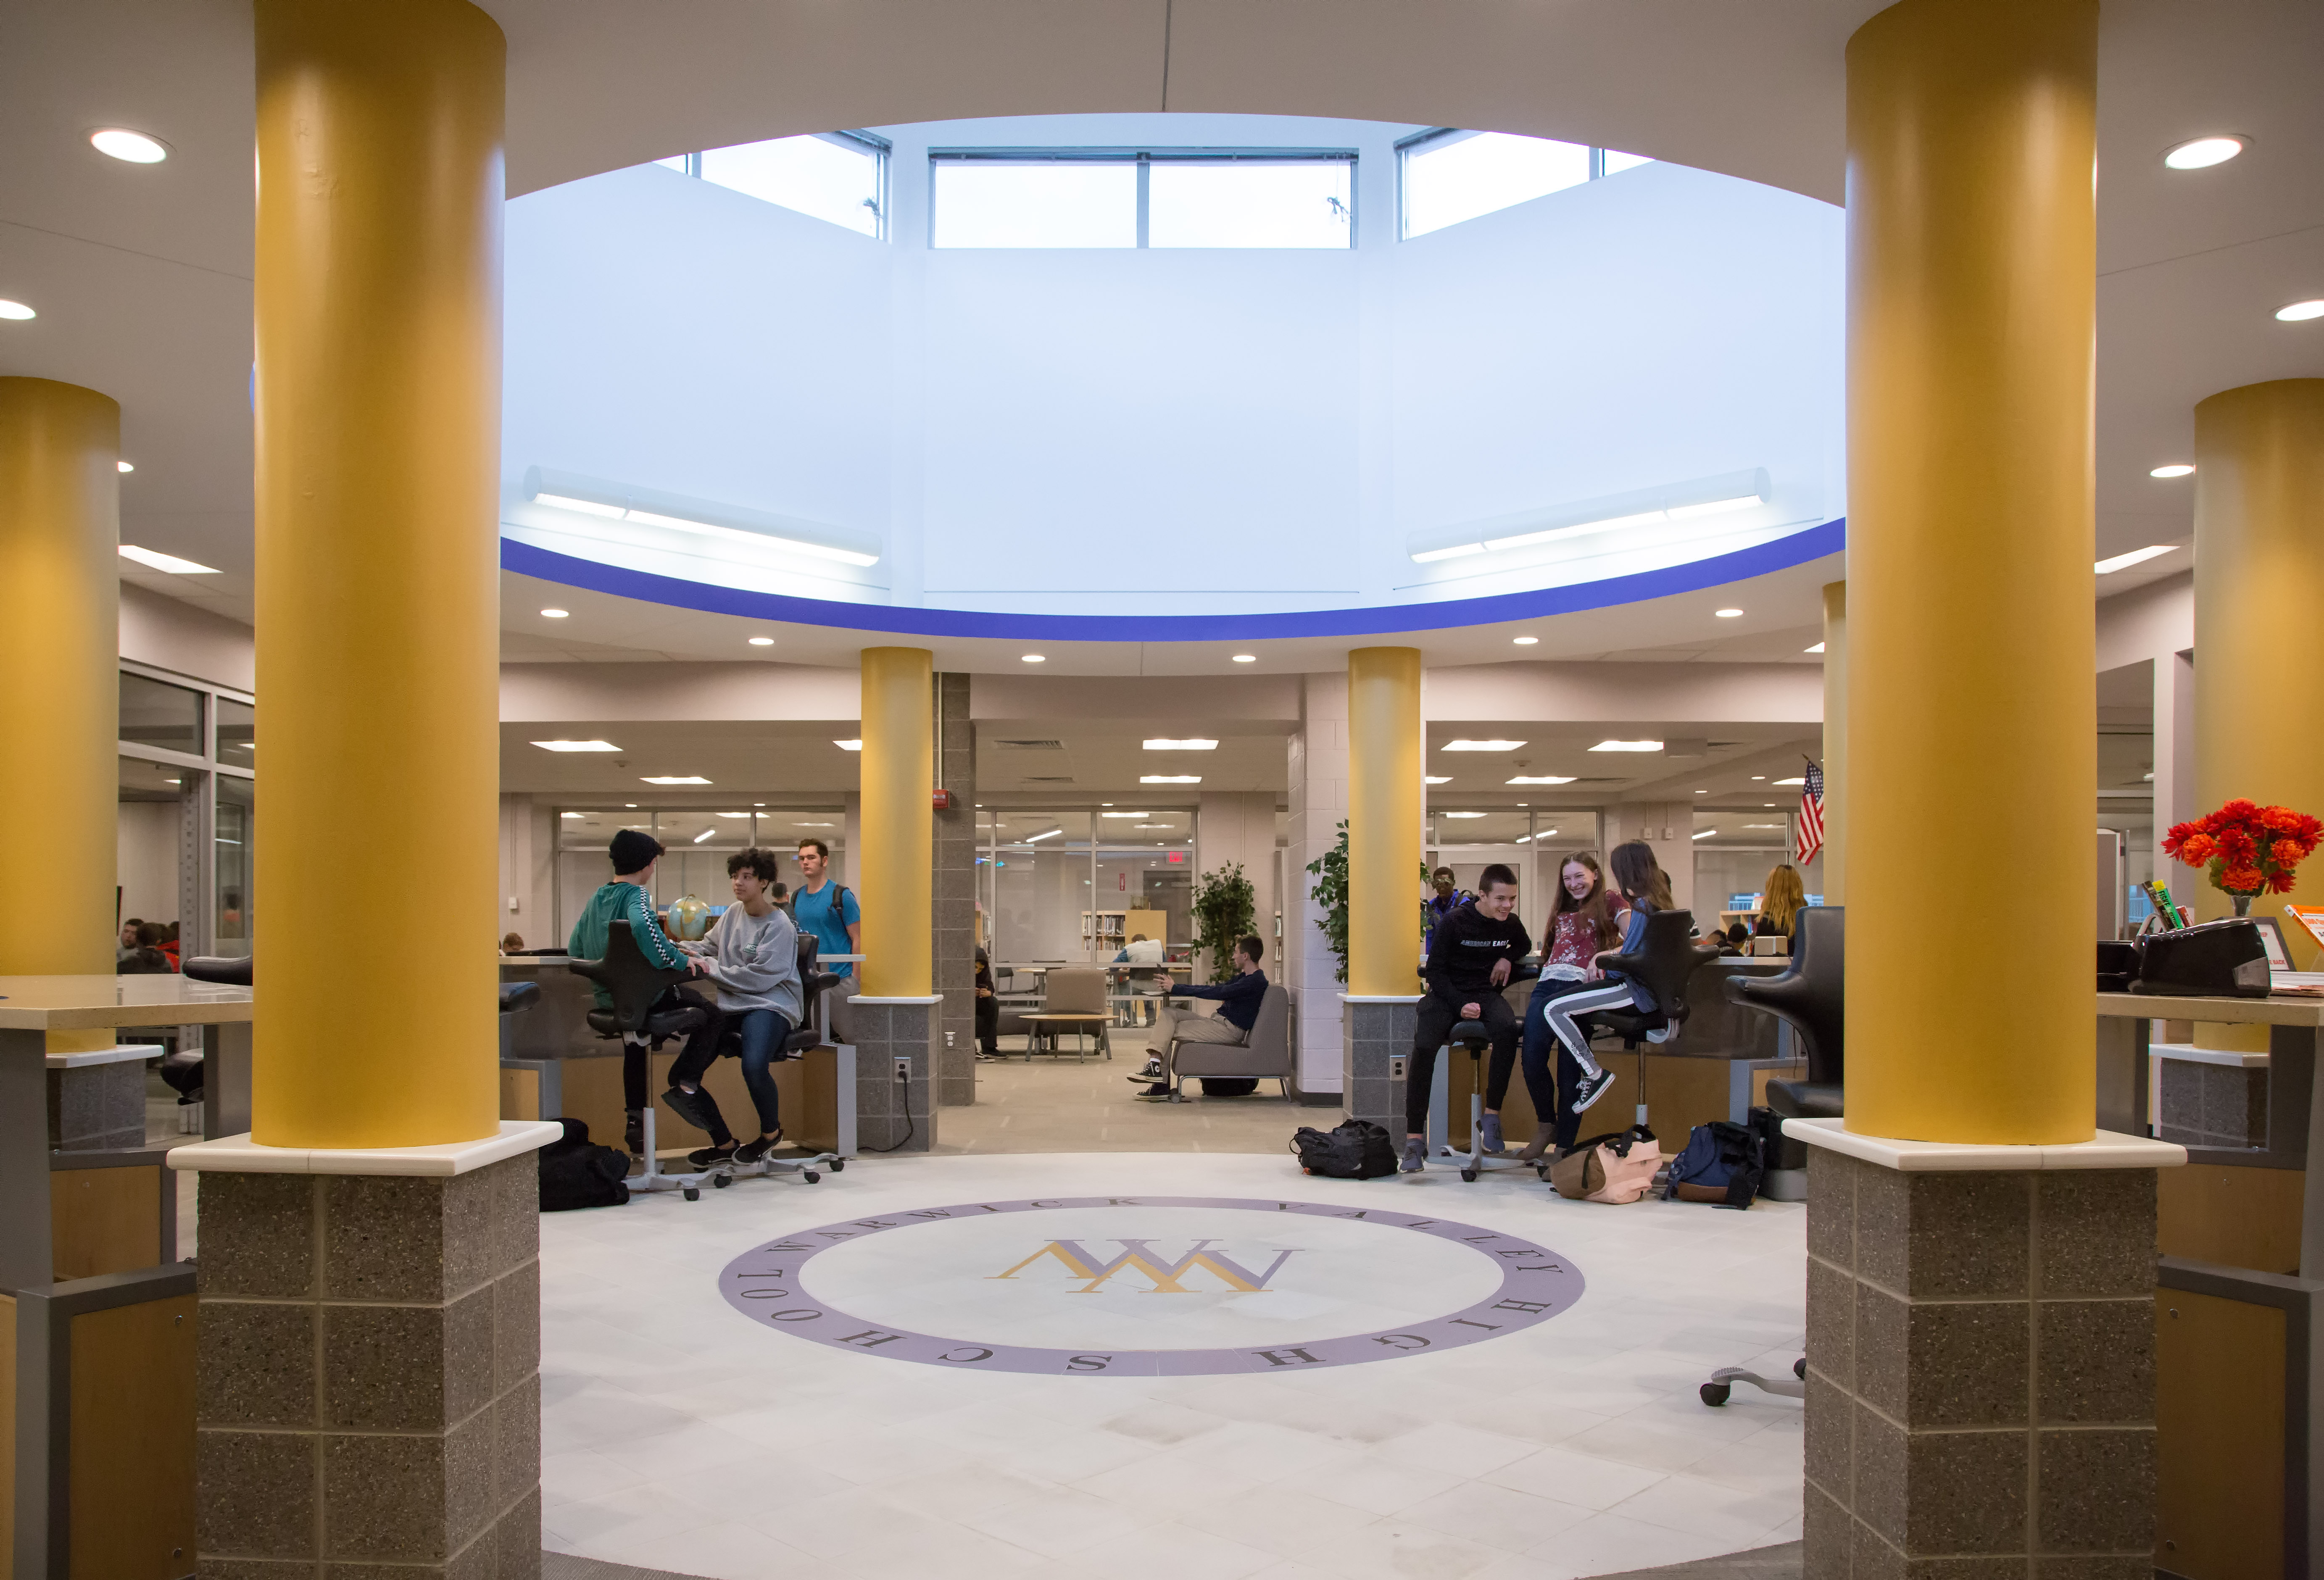 School entrance hallway